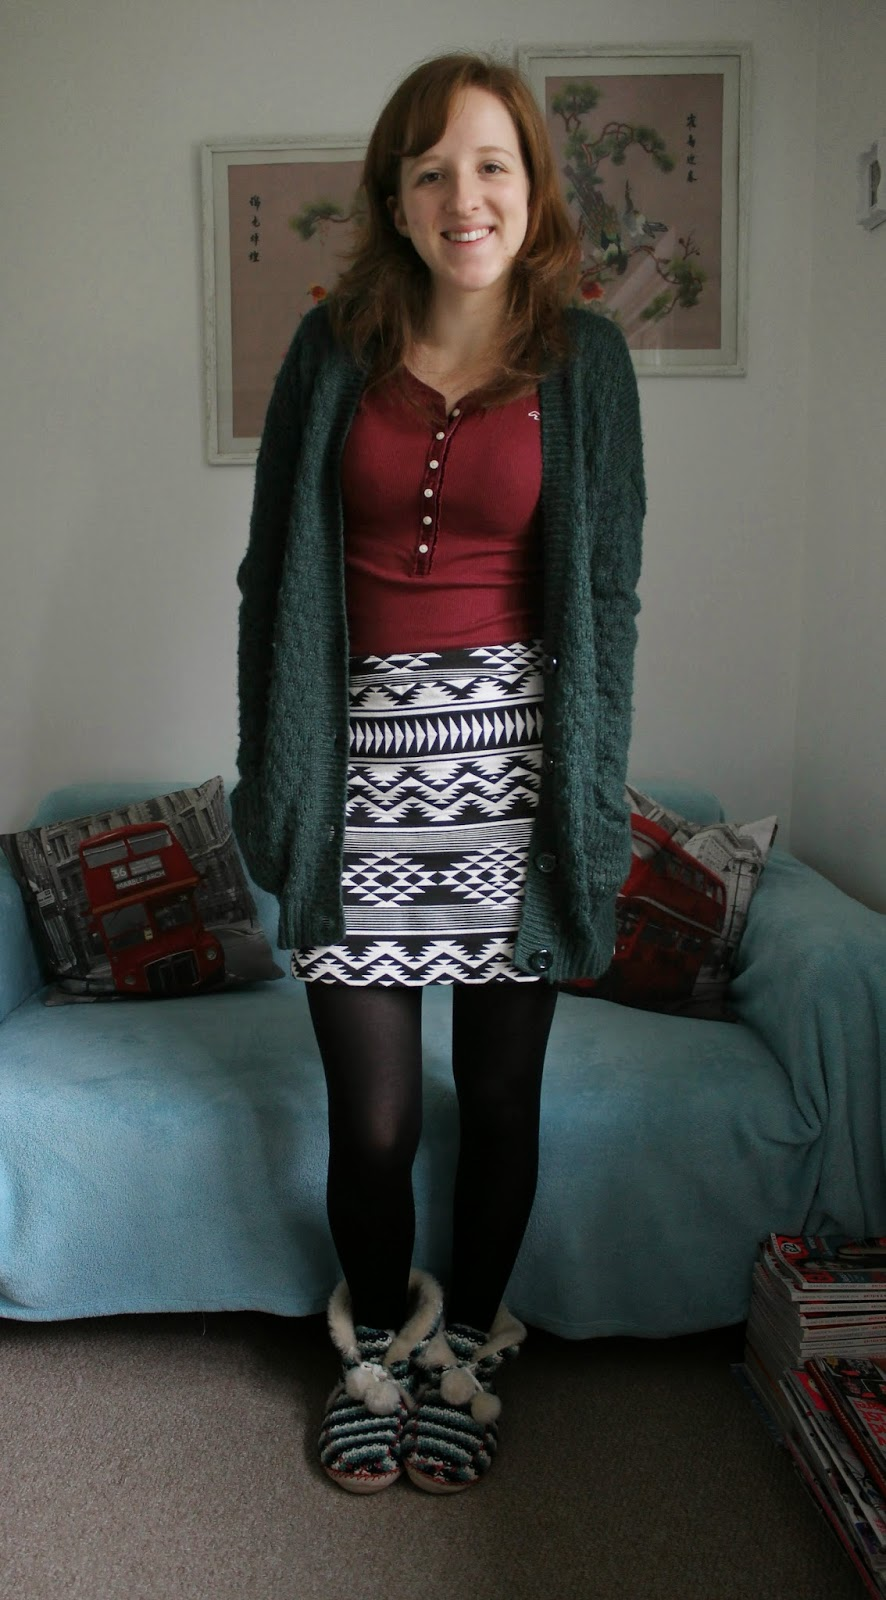 OOTD: Burgundy Top and Aztec Skirt aka Christmas Day Outfit